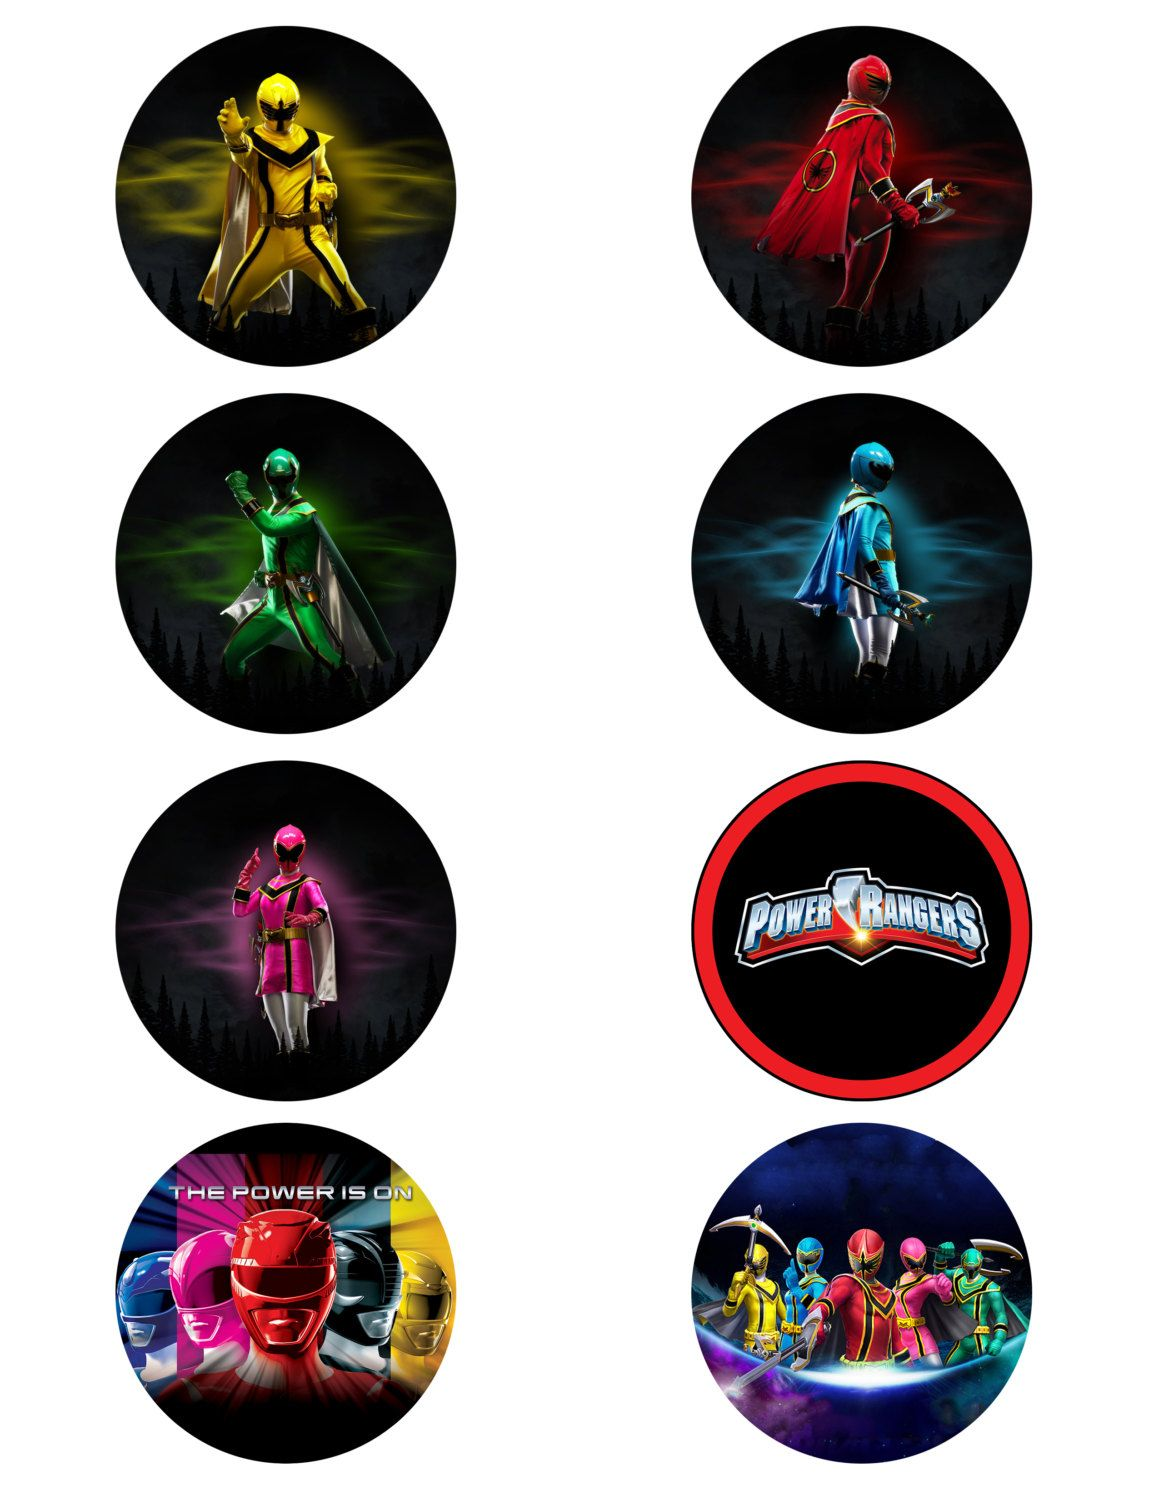 Power Rangers Printable Cupcake Toppers or Stickers   The Power Is On    4 00  via. Power Rangers Printable Cupcake Toppers or Stickers   The Power Is